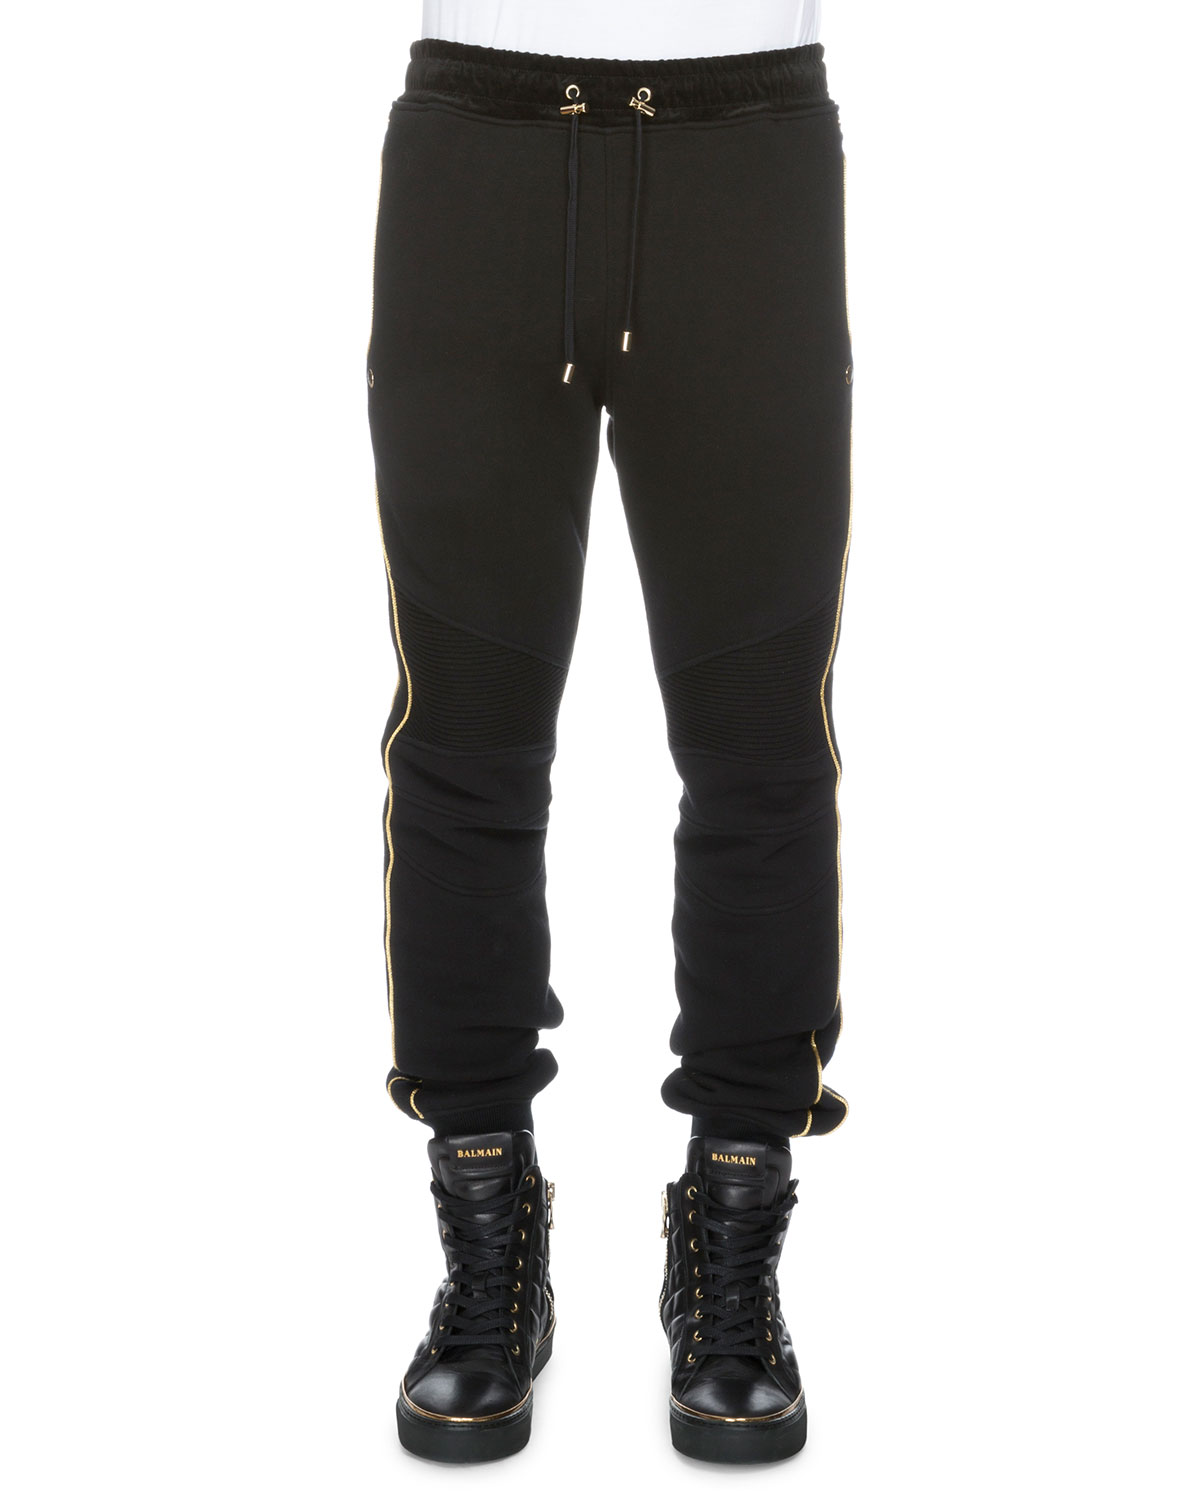 Cotton Sweatpants w/Metallic Piping, Black